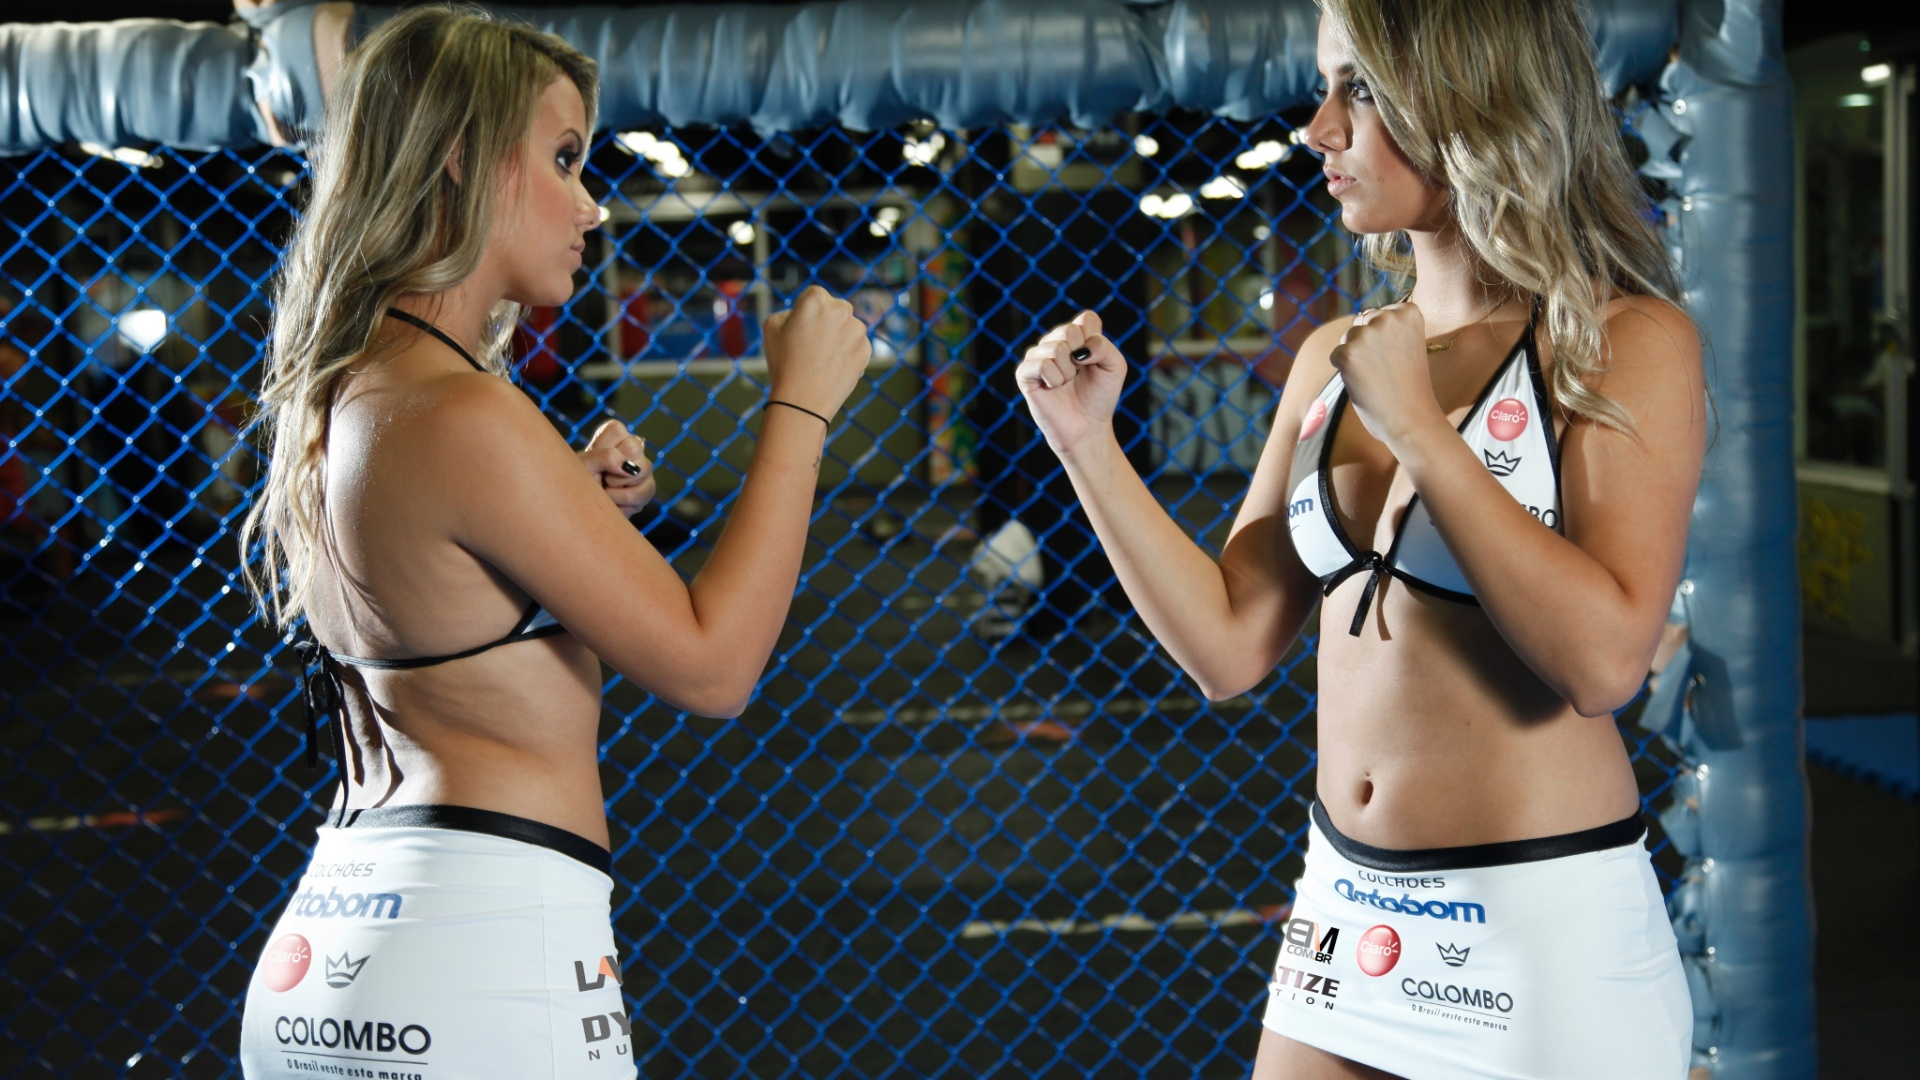 Gêmeas do BBB 15, Amanda e Andressa serão ring girls do Jungle Fight 76